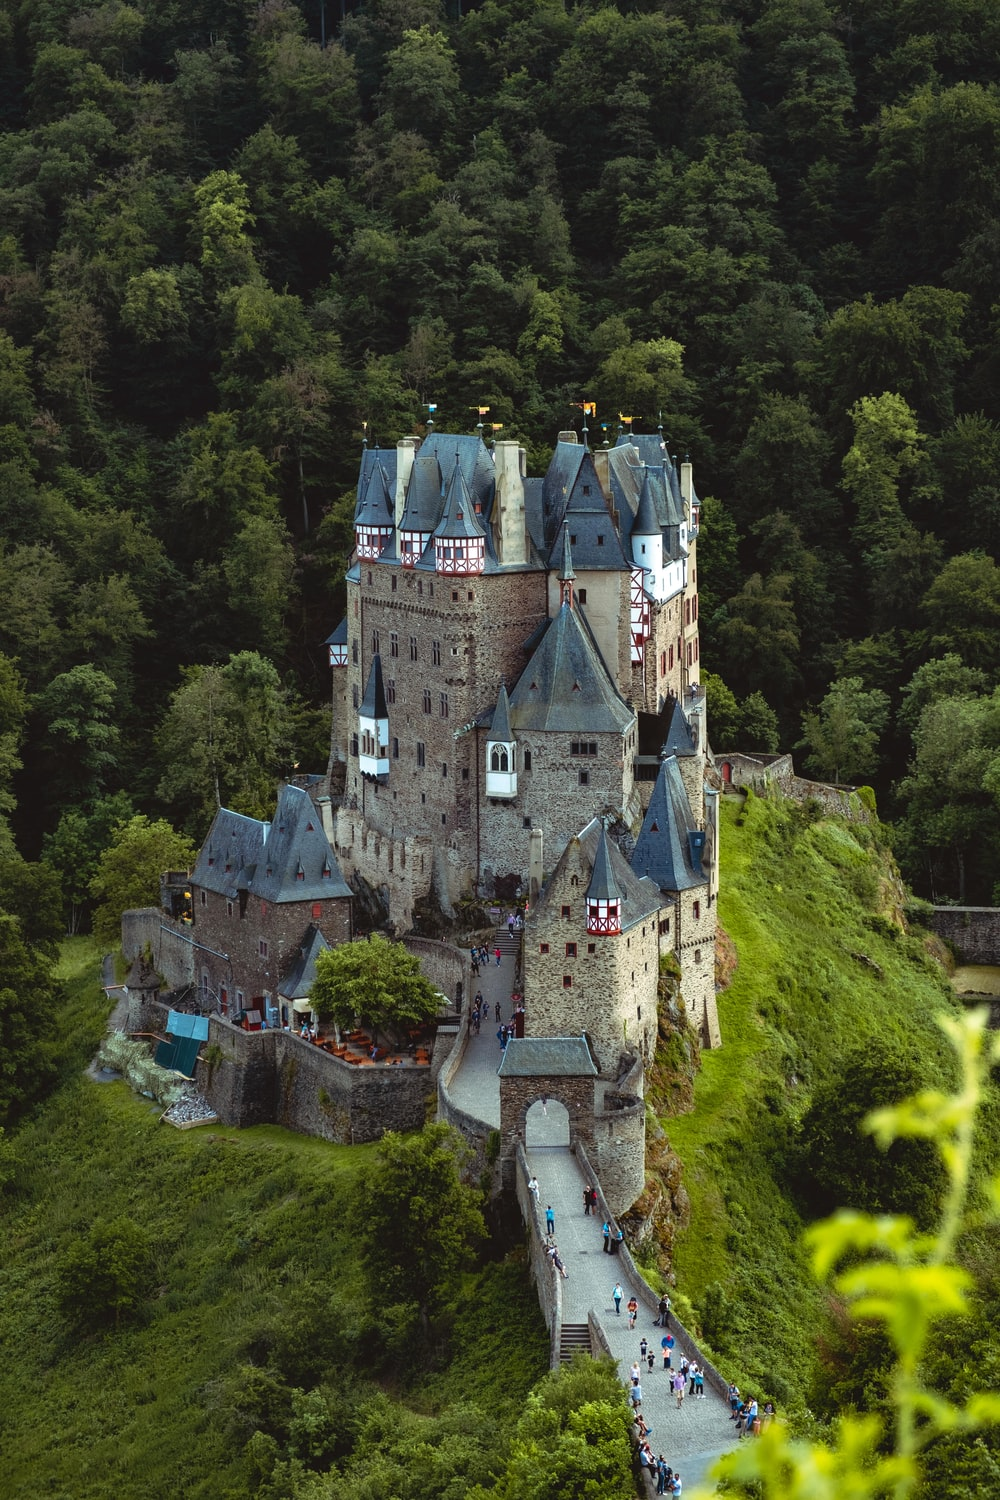 beige and blue painted castle scenery